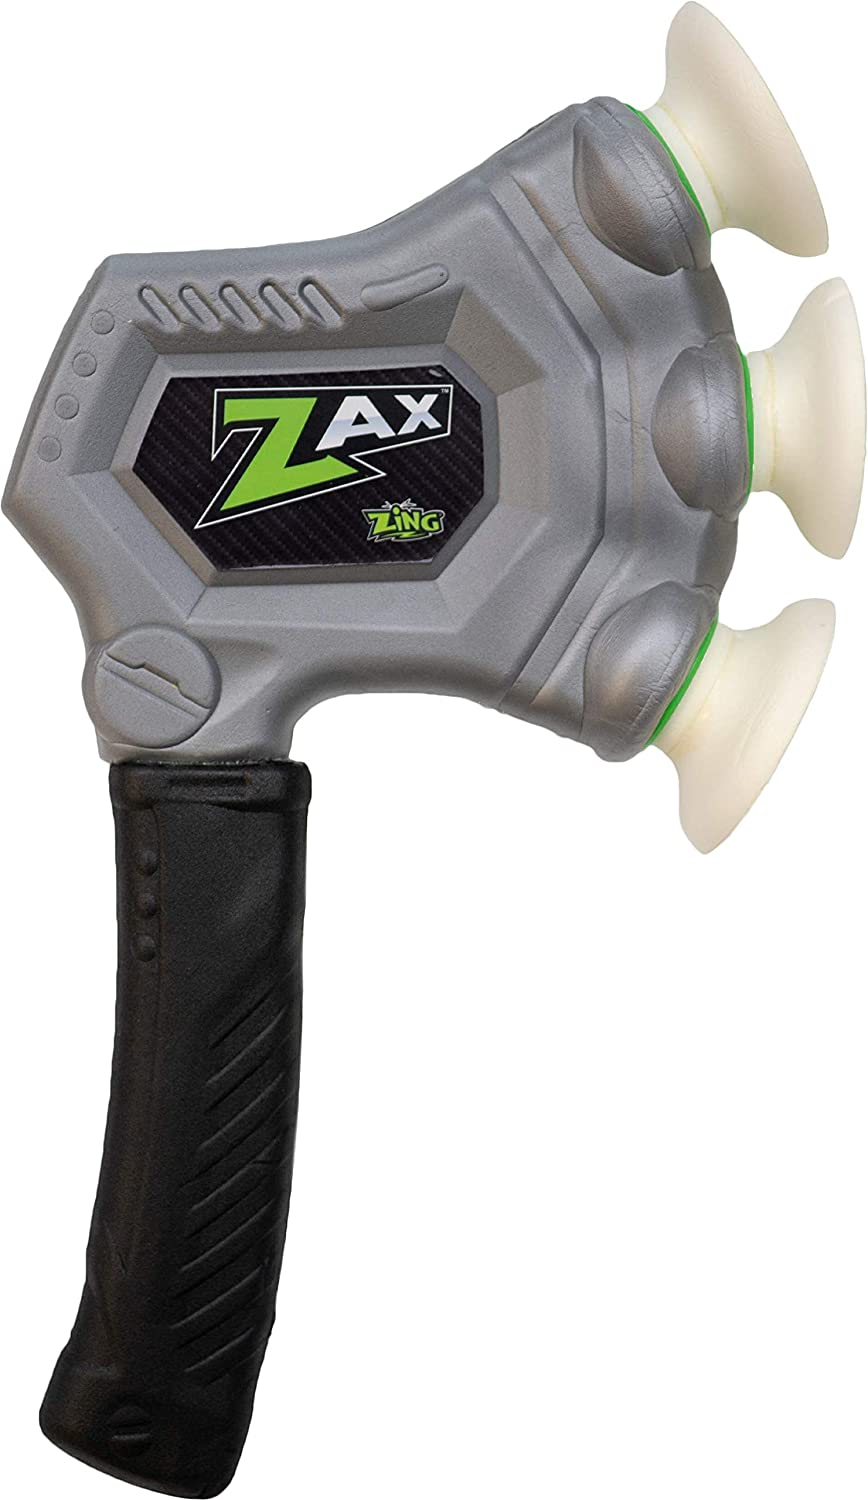 Zax - bringing the ax-throwing trend to home!